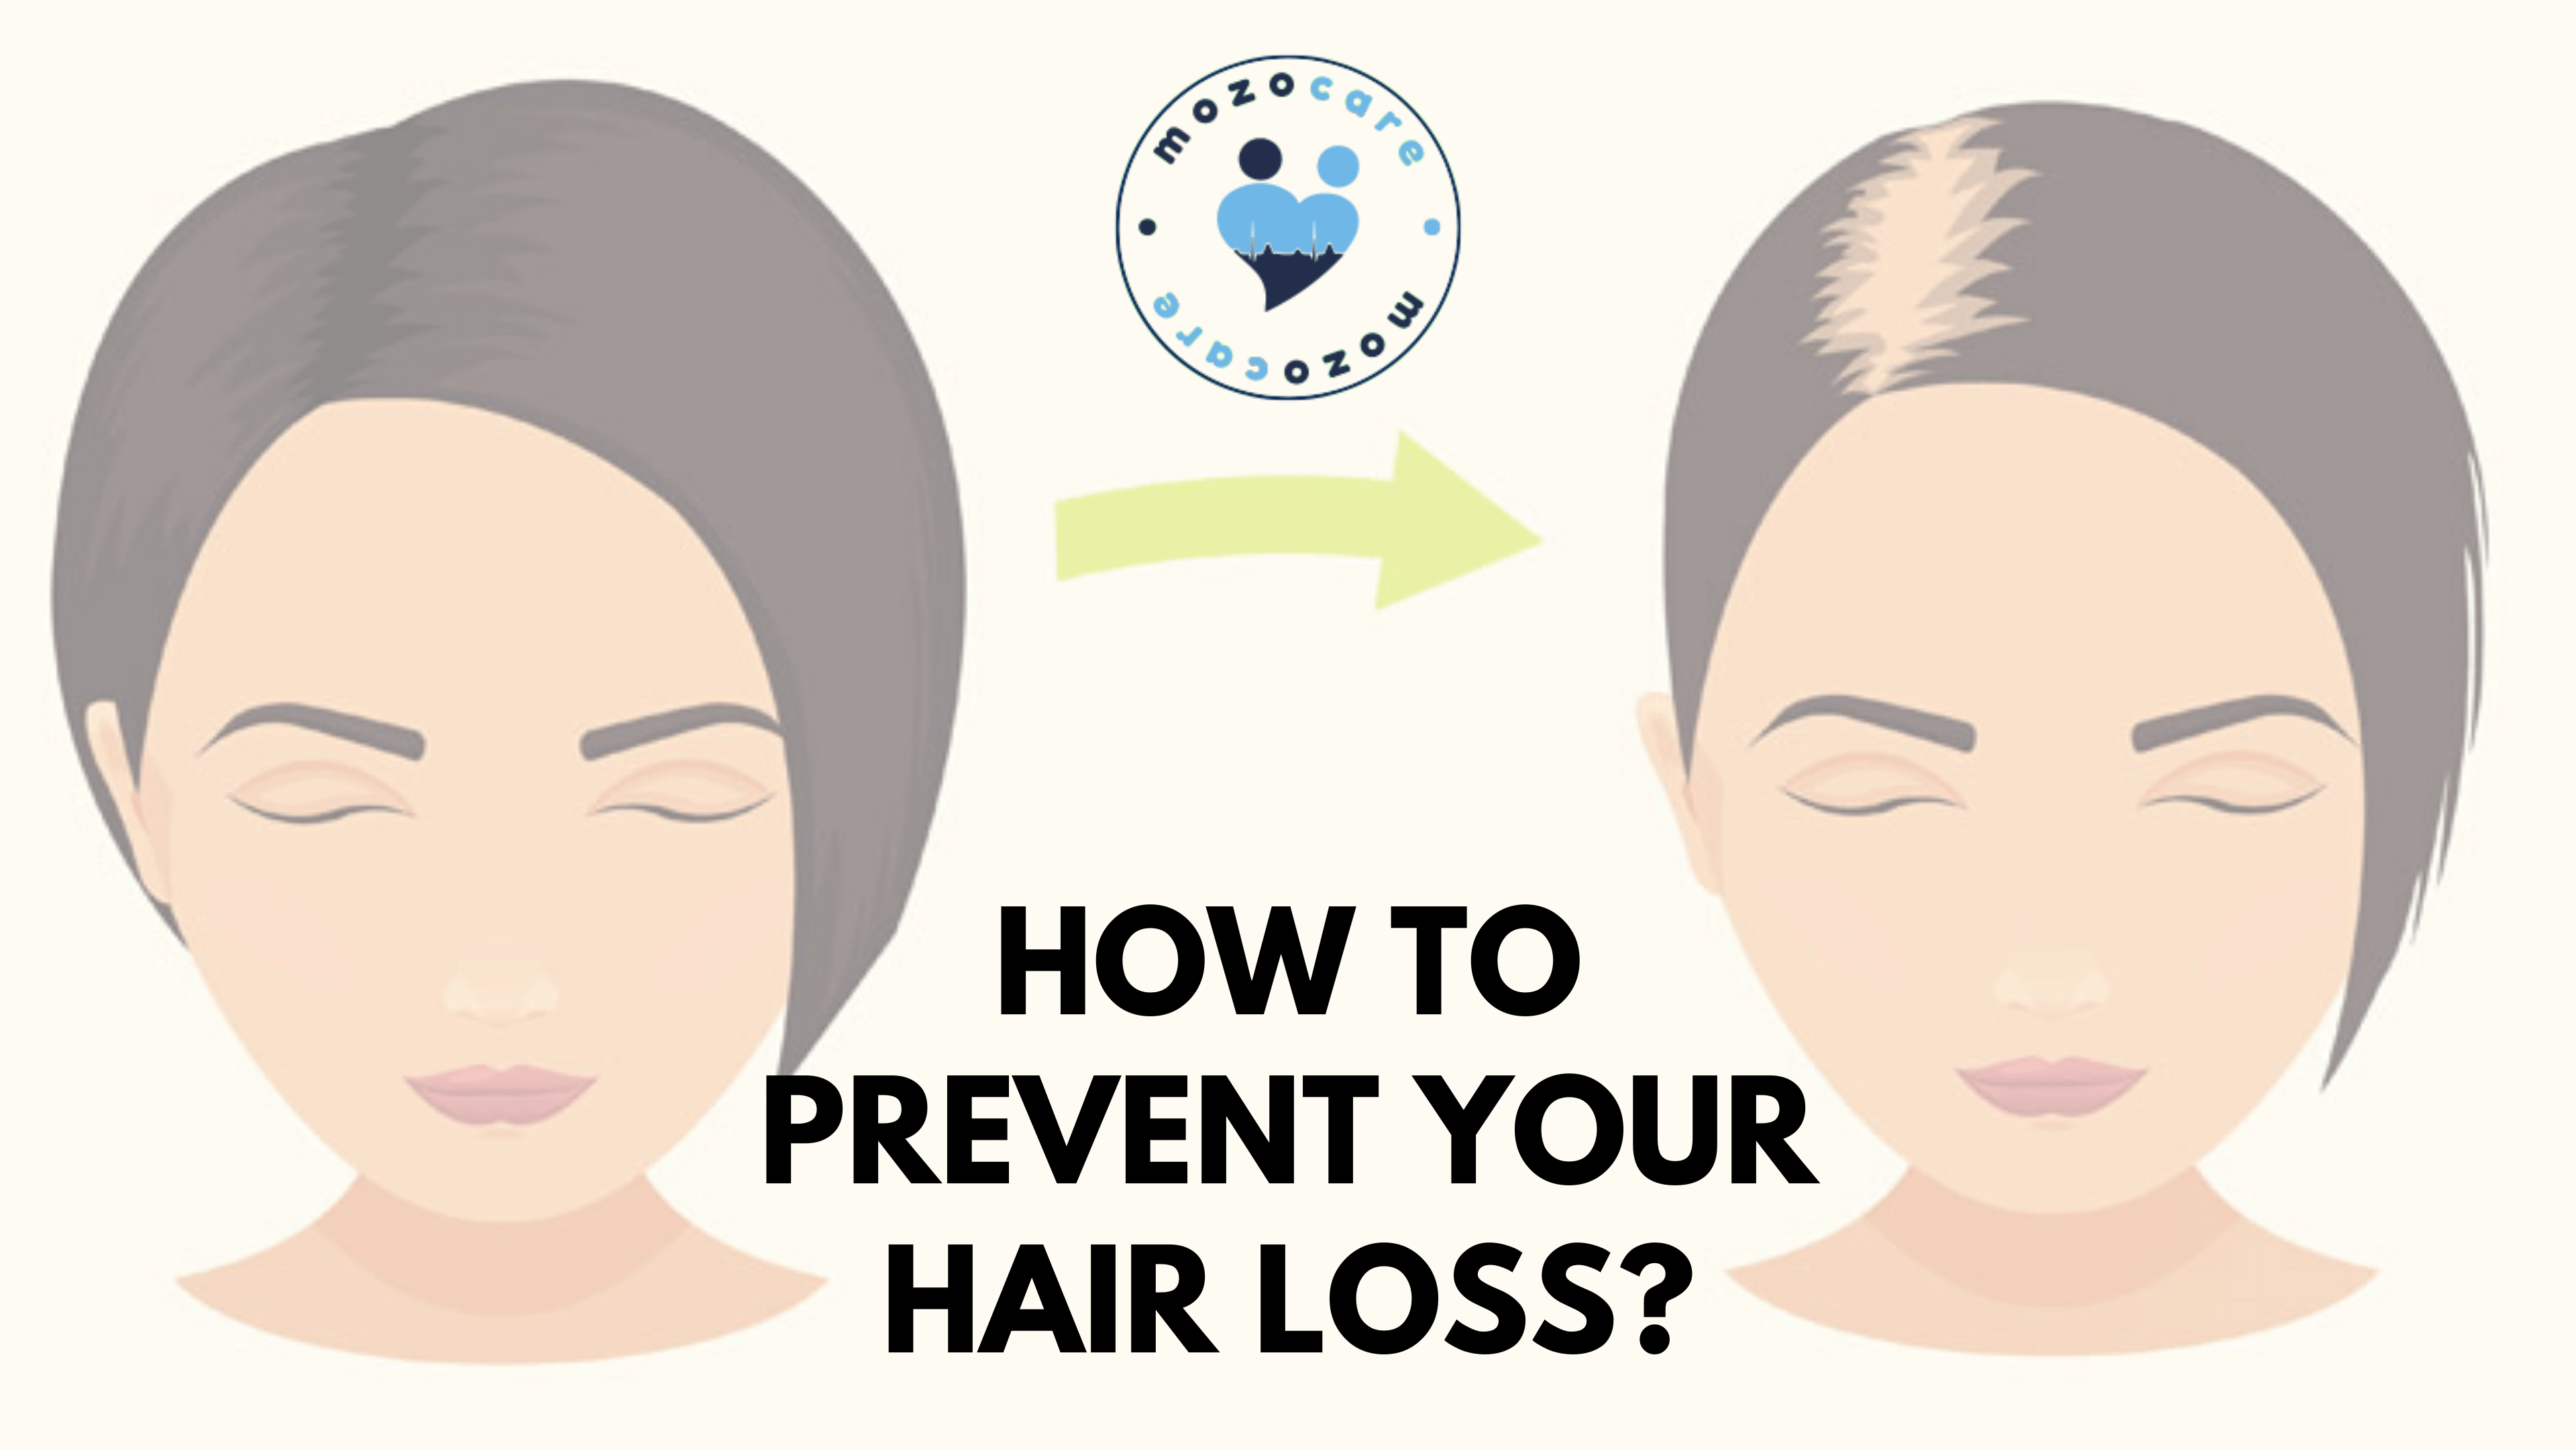 How To Prevent Your Hair Loss?